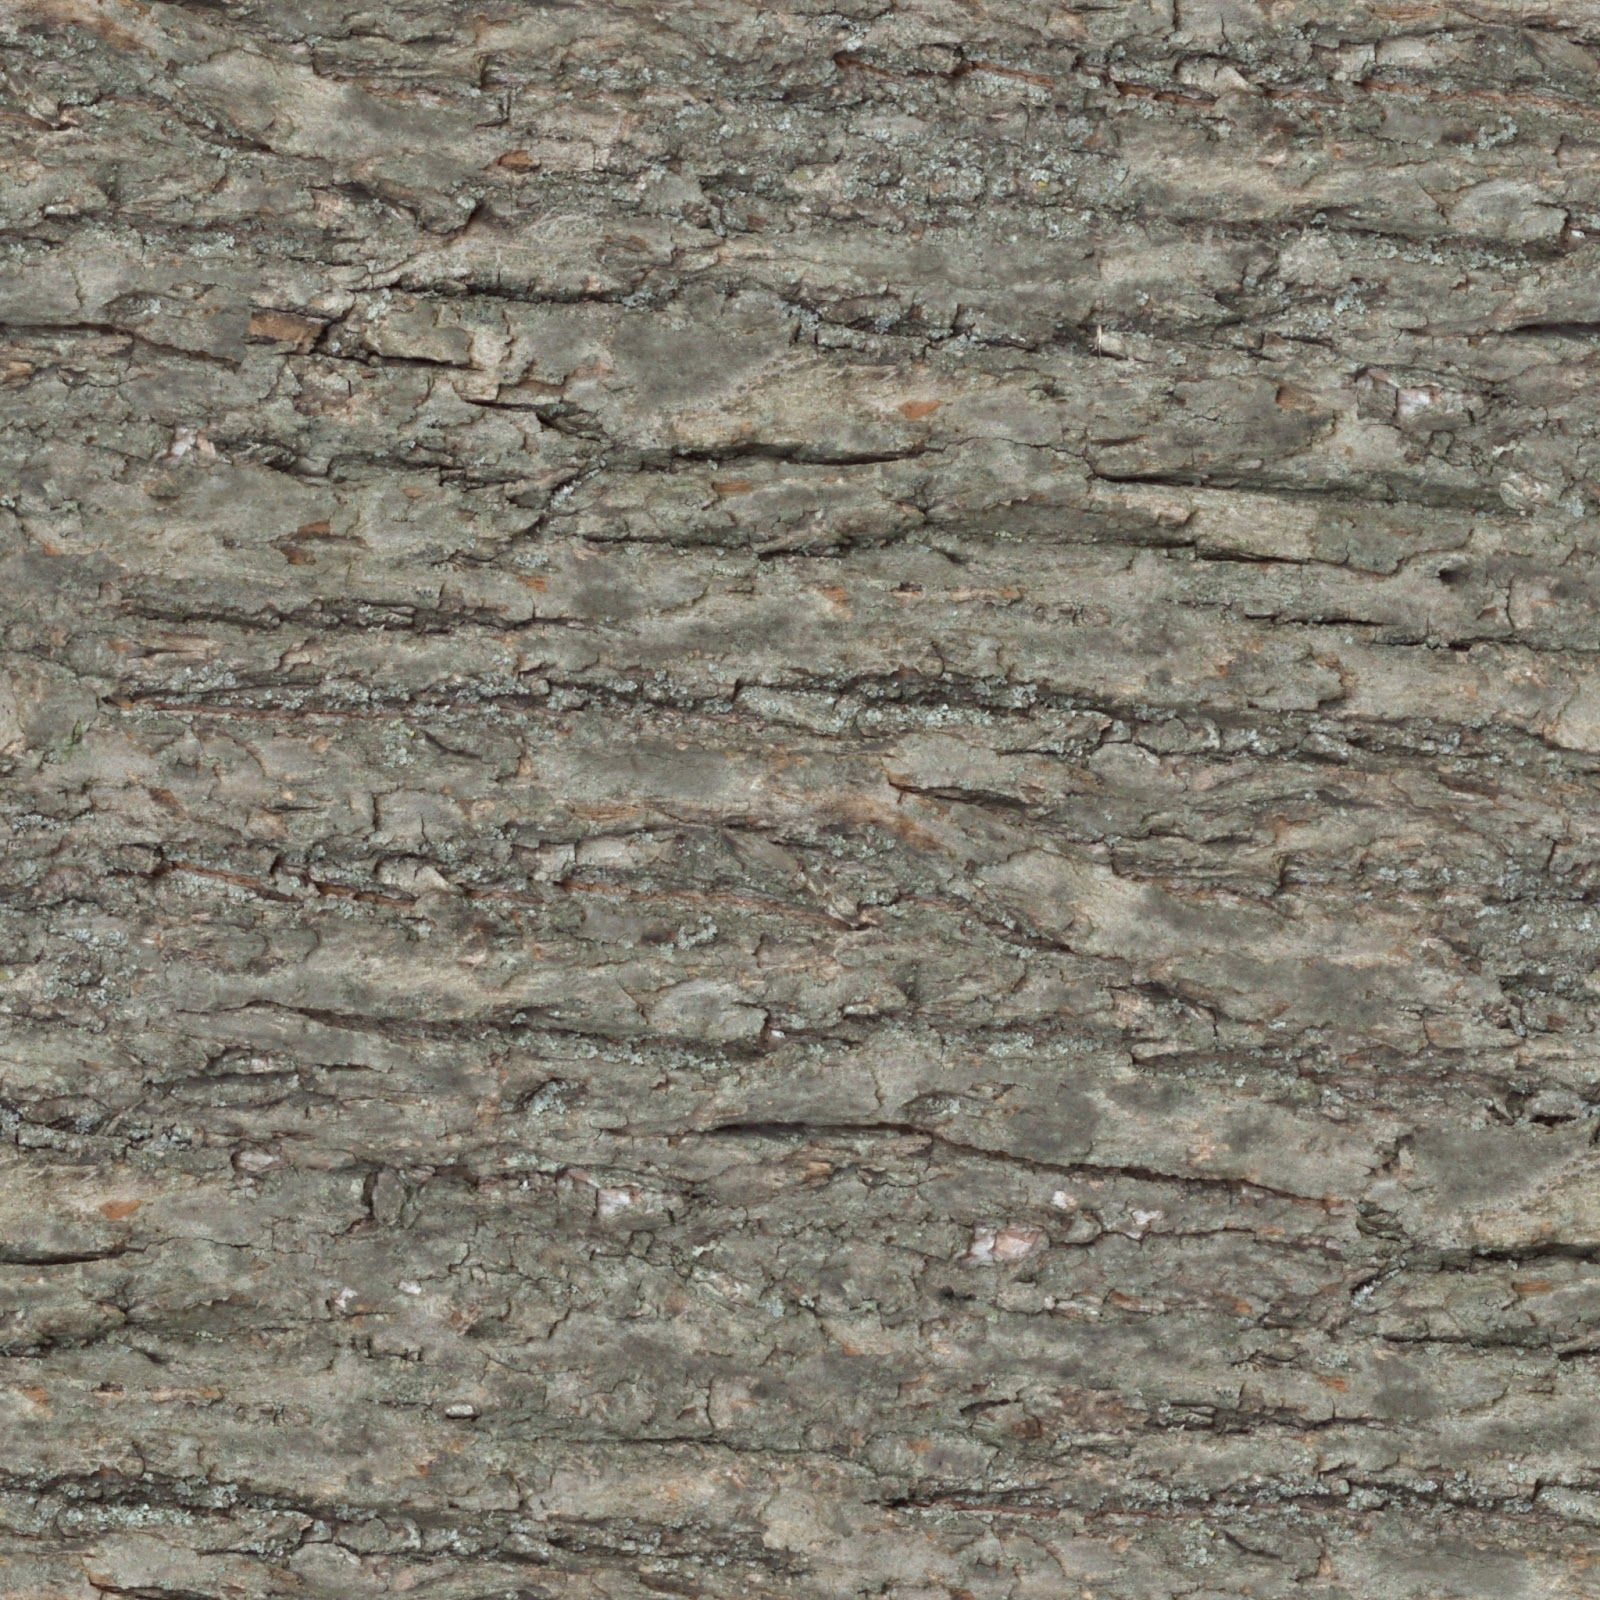 Wood Shingle Roof Texture Seamless 03881 Textures T